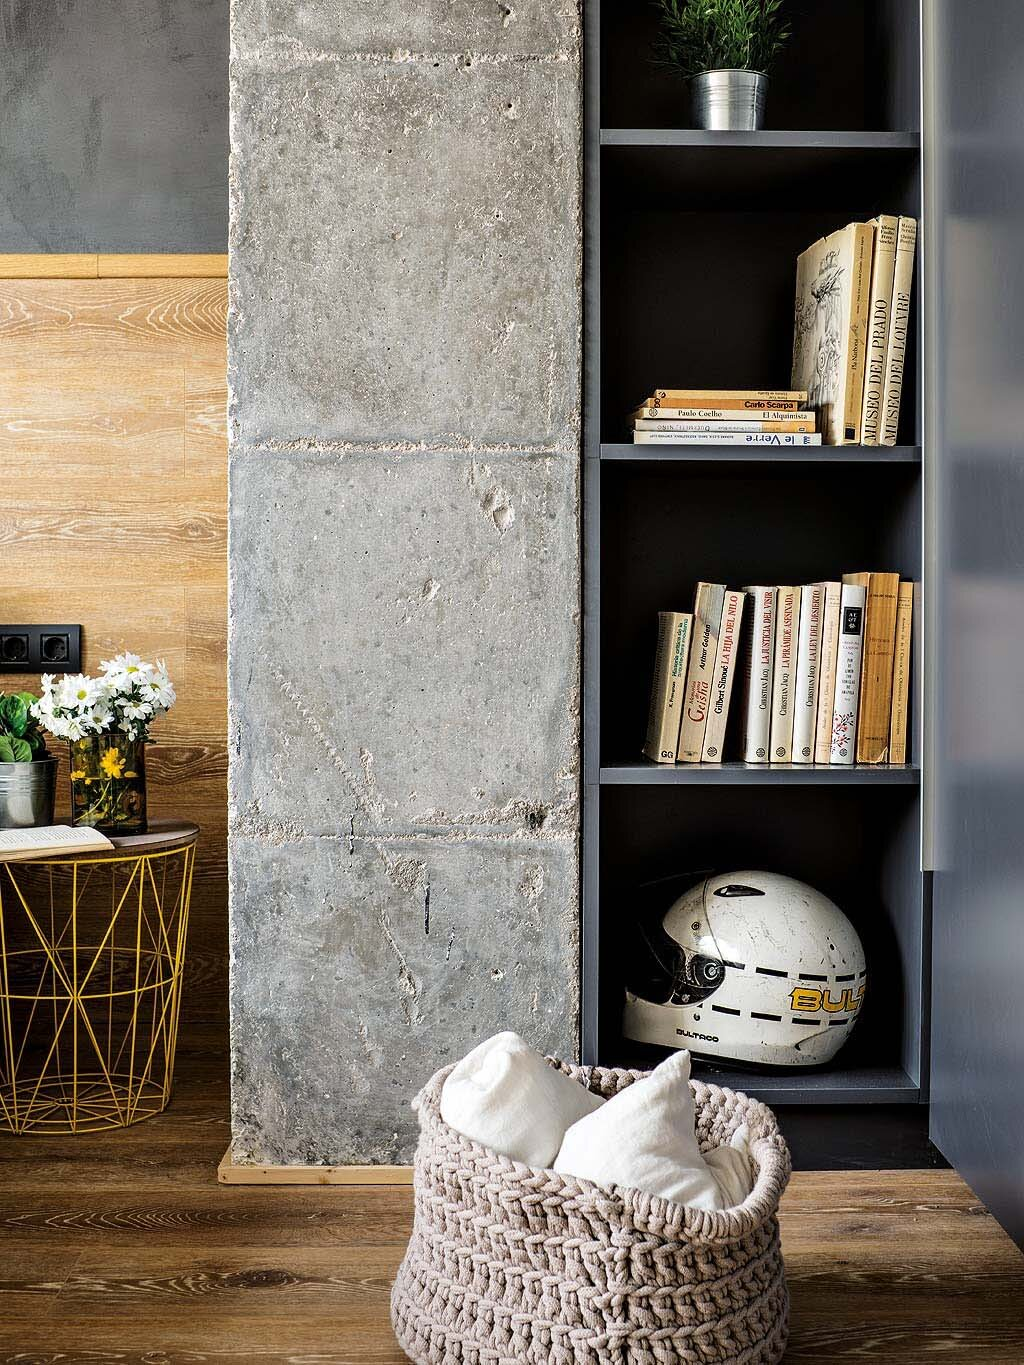 Inspiring Spanish Apartment with Raw Industrial Details 10